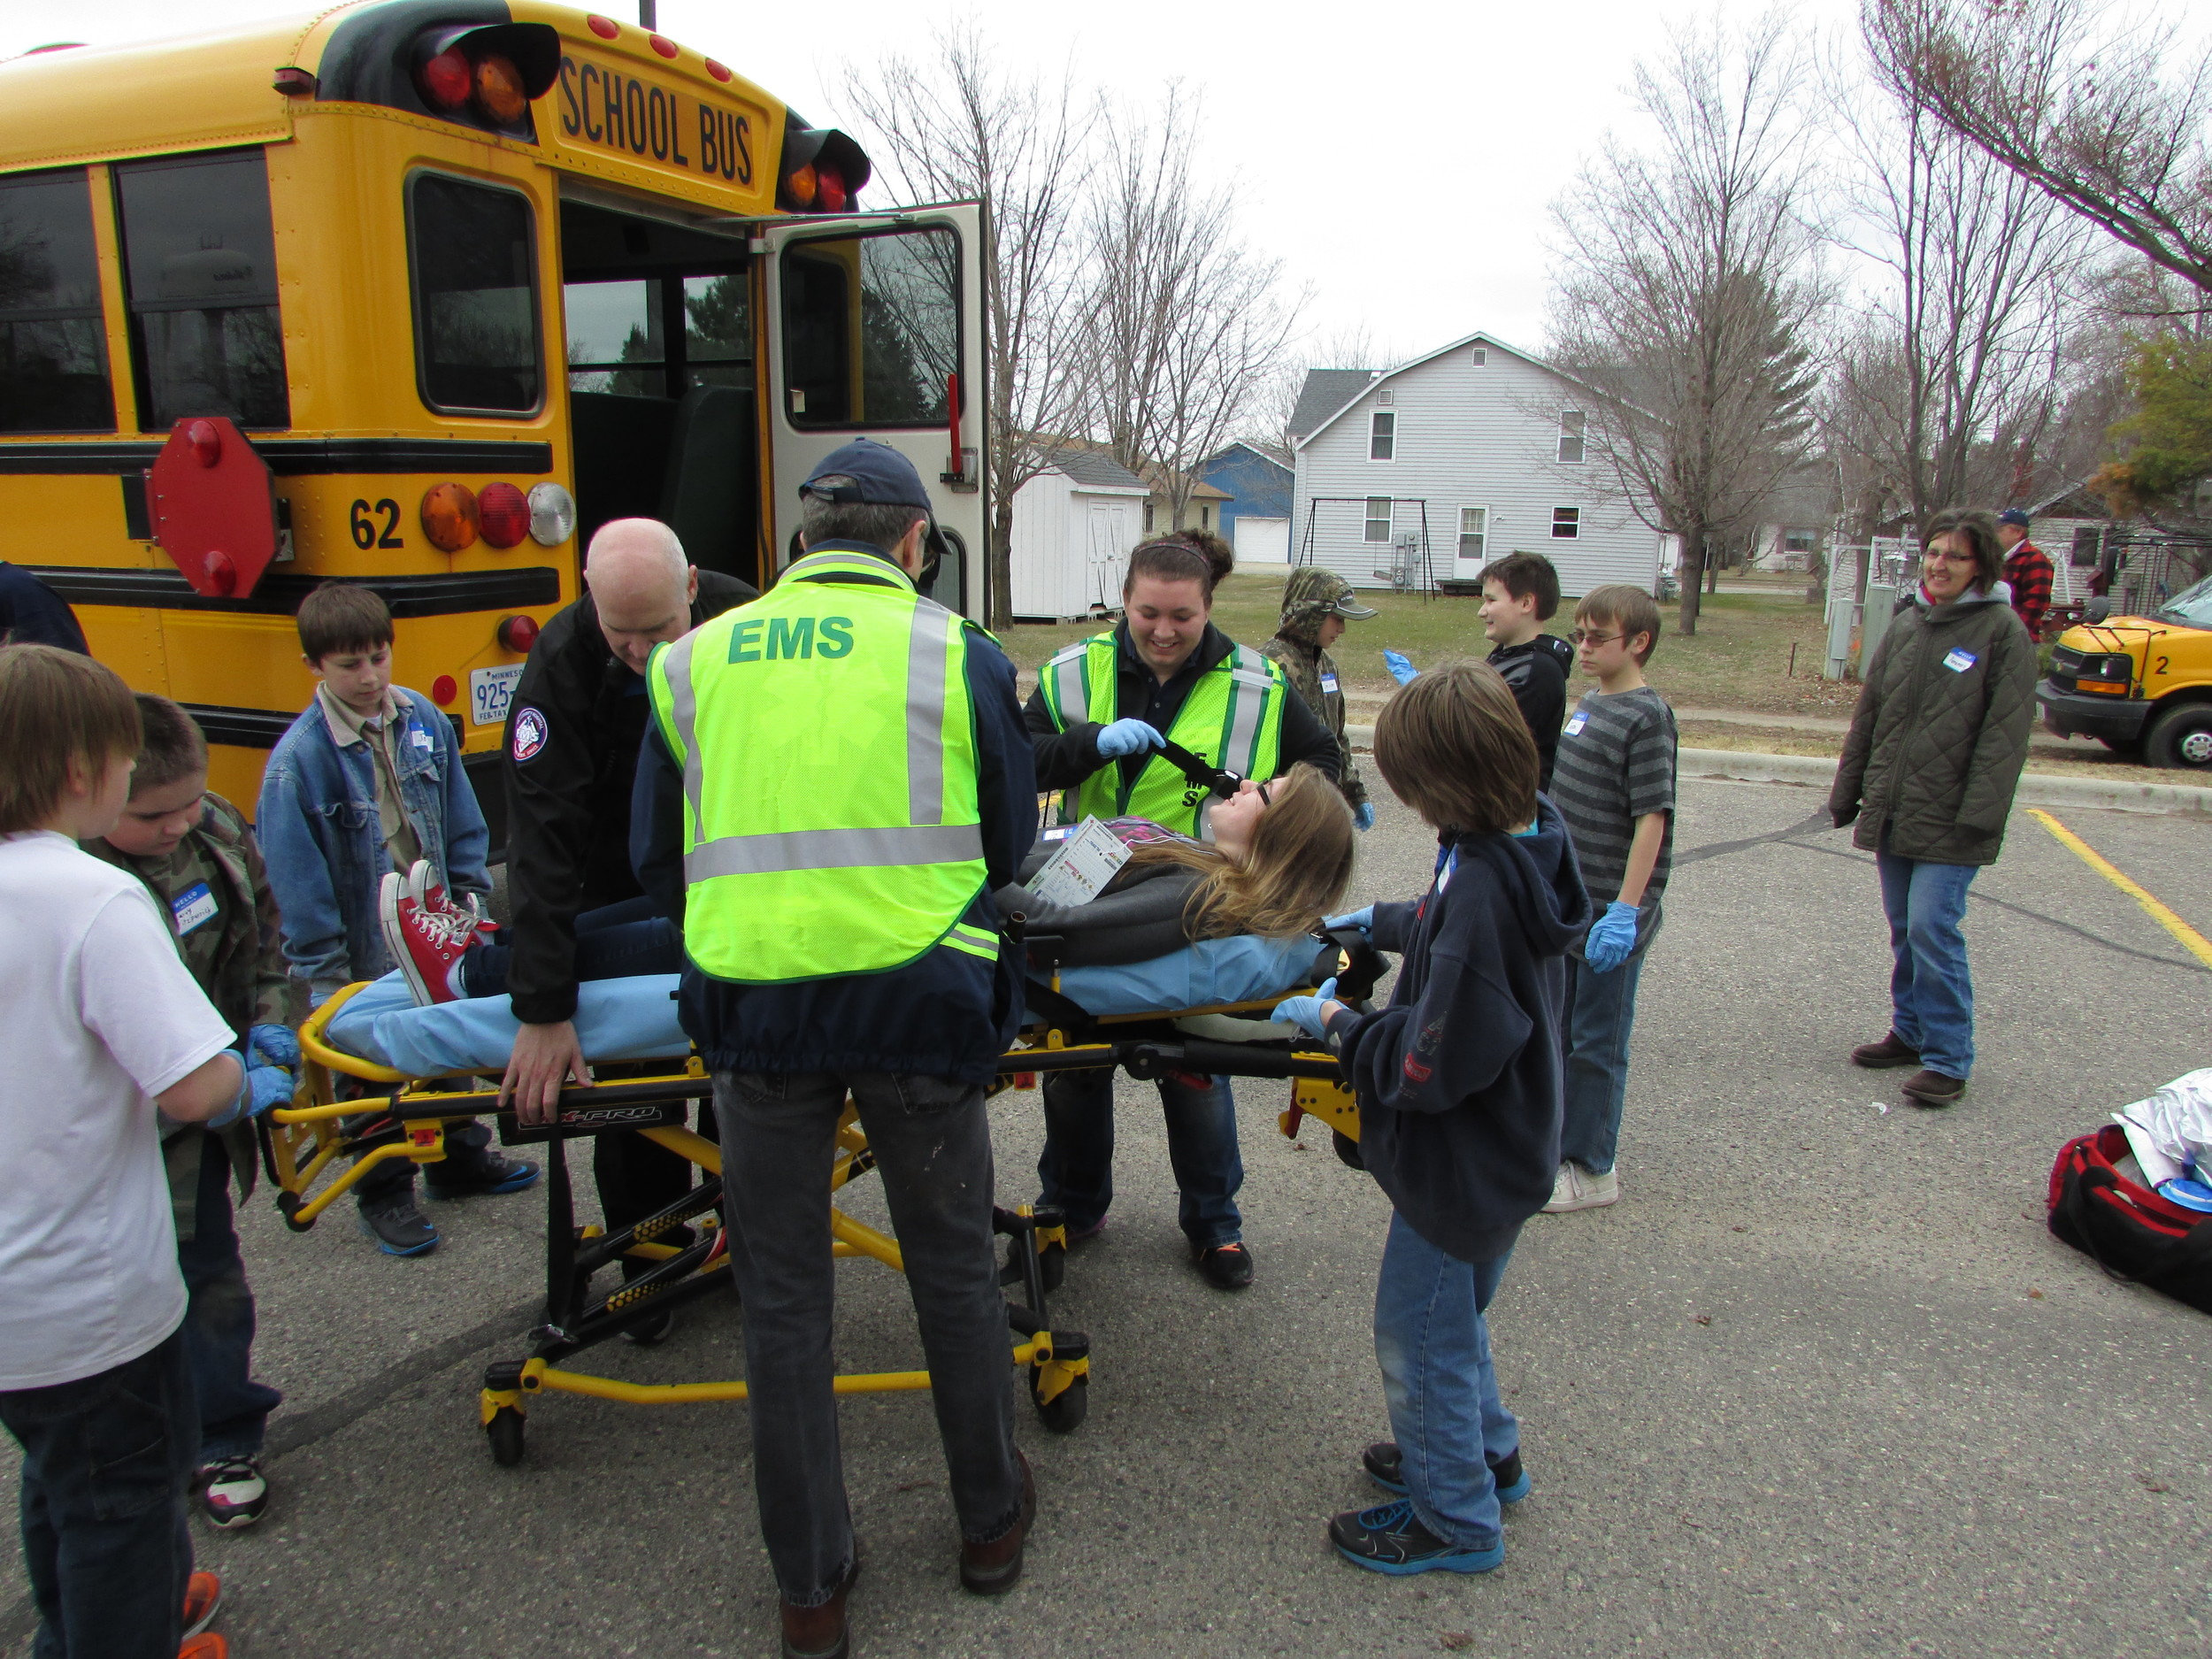 The mock drill helps Tri-County Hospital's medical staff prepare for emergency readiness in case a real-life situation such as a head-on collision between a vehicle and school bus occurs. (Photos by Ann Pate)